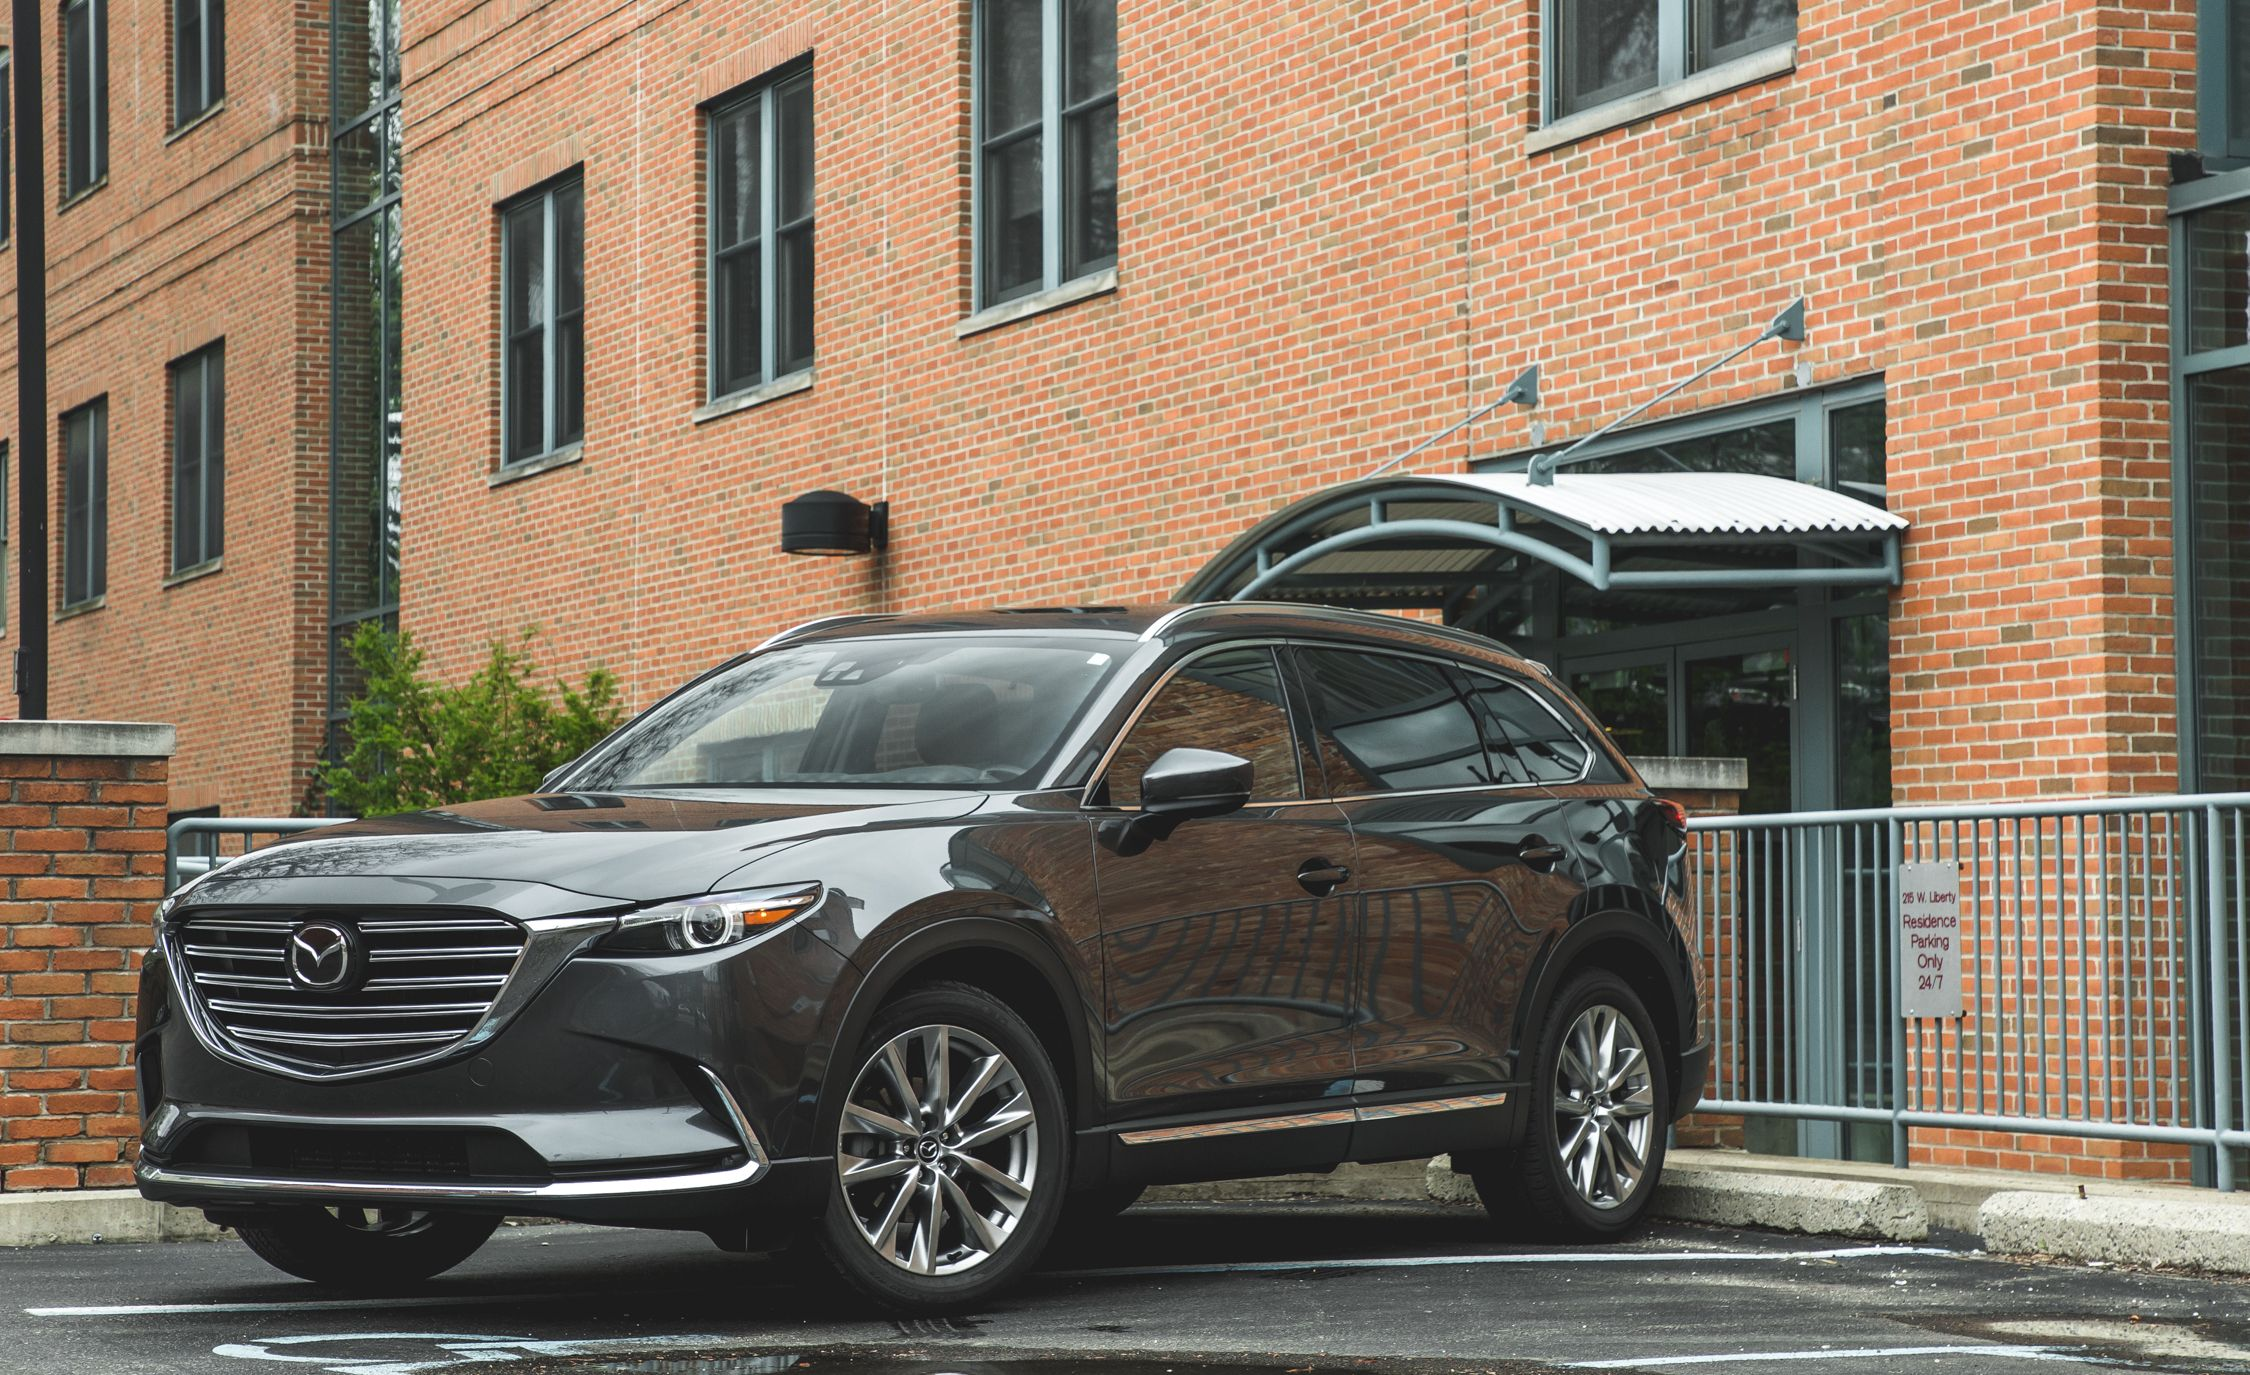 2018 Cx9 >> 2019 Mazda Cx 9 Reviews Mazda Cx 9 Price Photos And Specs Car